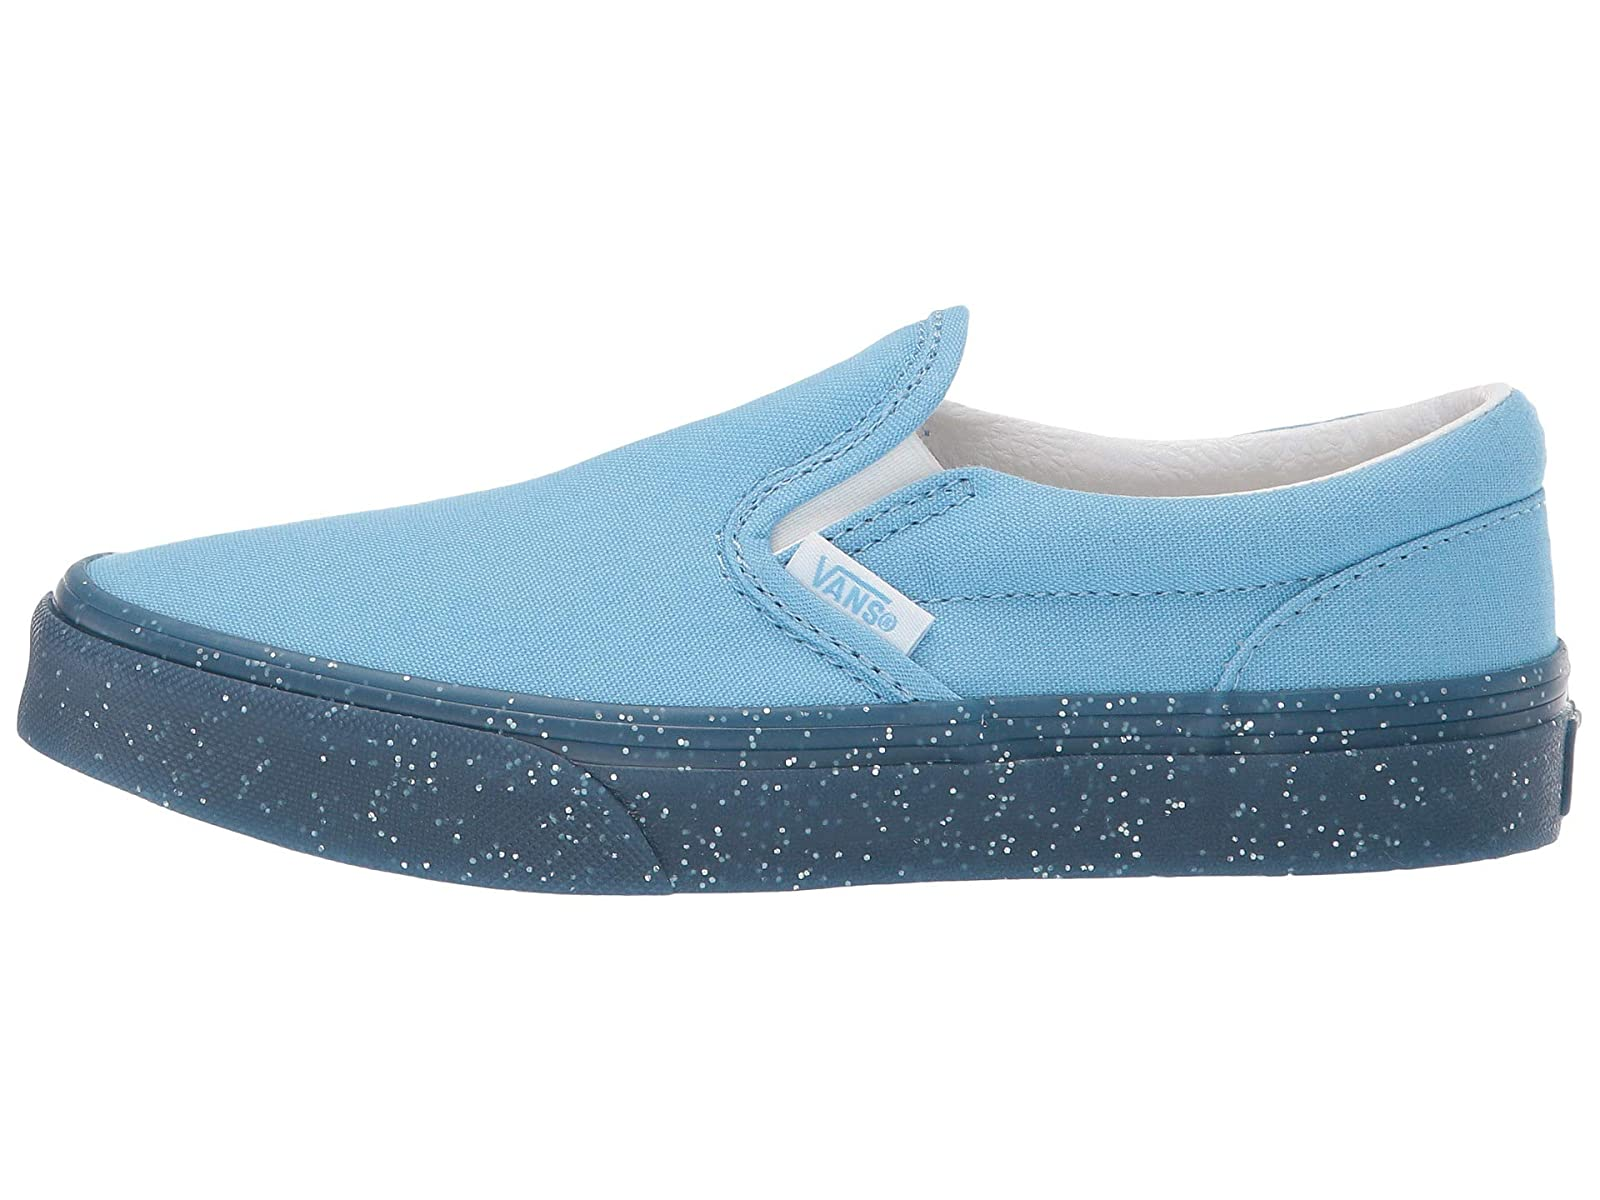 Details about Girl's Shoes Vans Kids Classic Slip On (Little KidBig Kid)